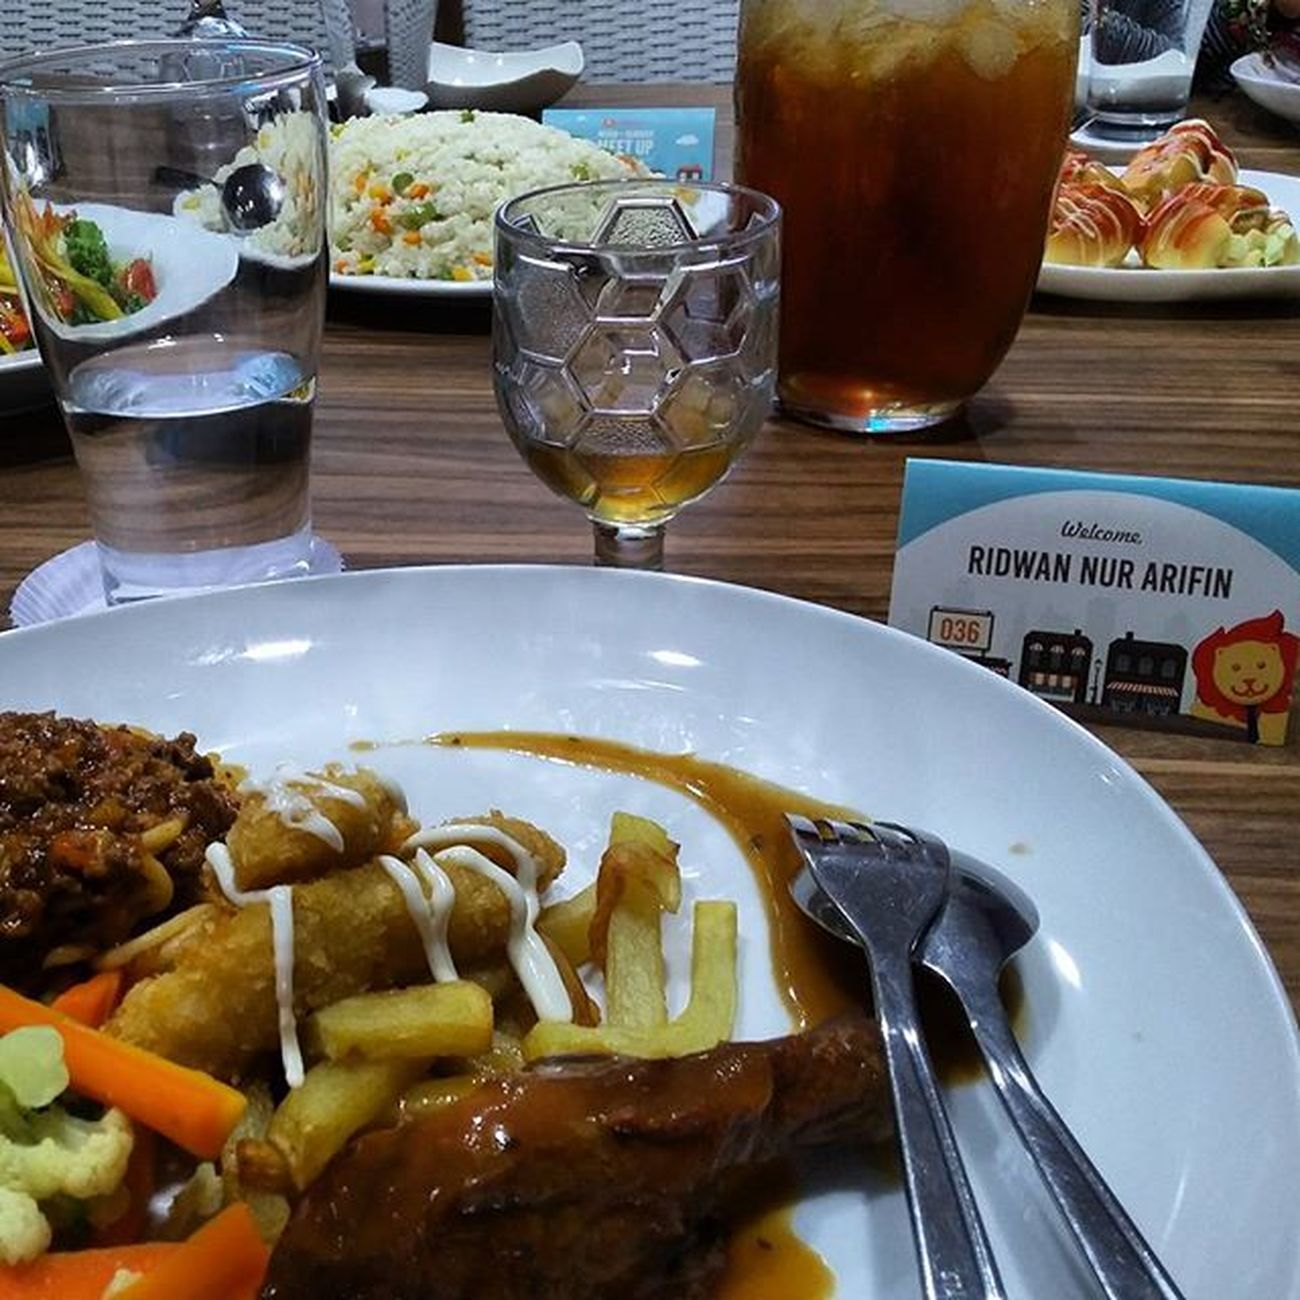 Kerja kantoran ma cuma buat sampingan aja, selebihnya kerja full time sebagai explorer, eater, sleeper dan dreamer. Hihii.. Nom nom nom nom.. Thankyou for invite me @travelioid HelloLio YourTripYourPrice Ridwanderful